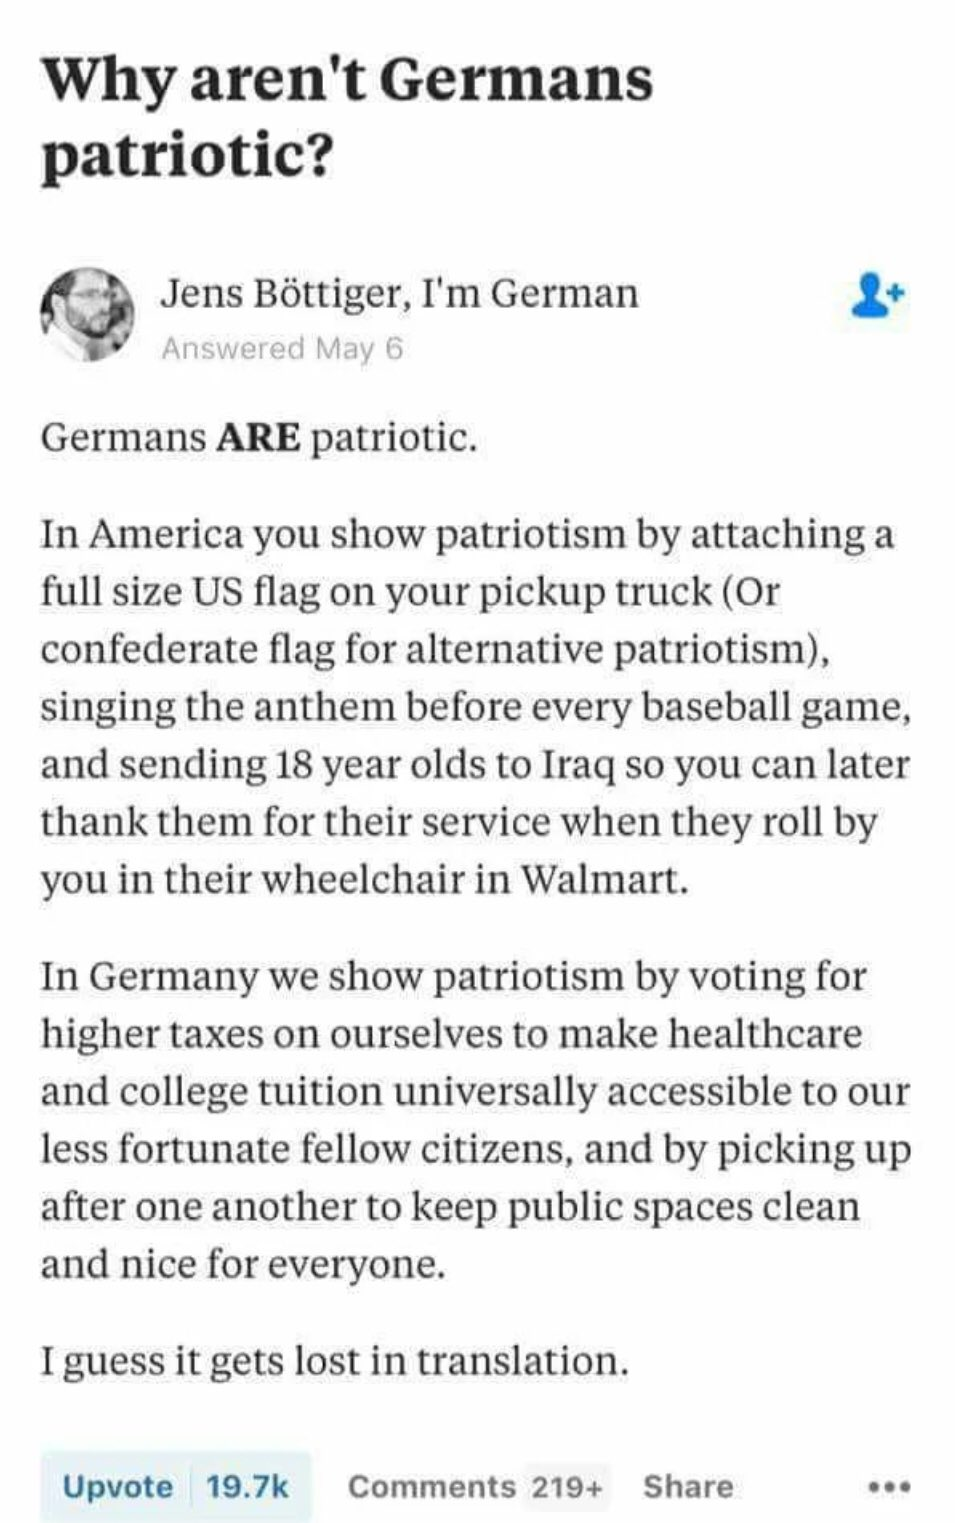 Political, Germany, German, America, Americans, American Political Memes Political, Germany, German, America, Americans, American text: Why aren't Germans patriotic? Jens Böttiger, I'm German Answered May 6 Germans ARE patriotic. In America you show patriotism by attaching a full size US flag on your pickup truck (Or confederate flag for alternative patriotism), singing the anthem before every baseball game, and sending 18 year olds to Iraq so you can later thank them for their service when they roll by you in their wheelchair in Walmart. In Germany we show patriotism by voting for higher taxes on ourselves to make healthcare and college tuition universally accessible to our less fortunate fellow citizens, and by picking up after one another to keep public spaces clean and nice for everyone. I guess it gets lost in translation. Upvote 19.7k Comments 219+ Share